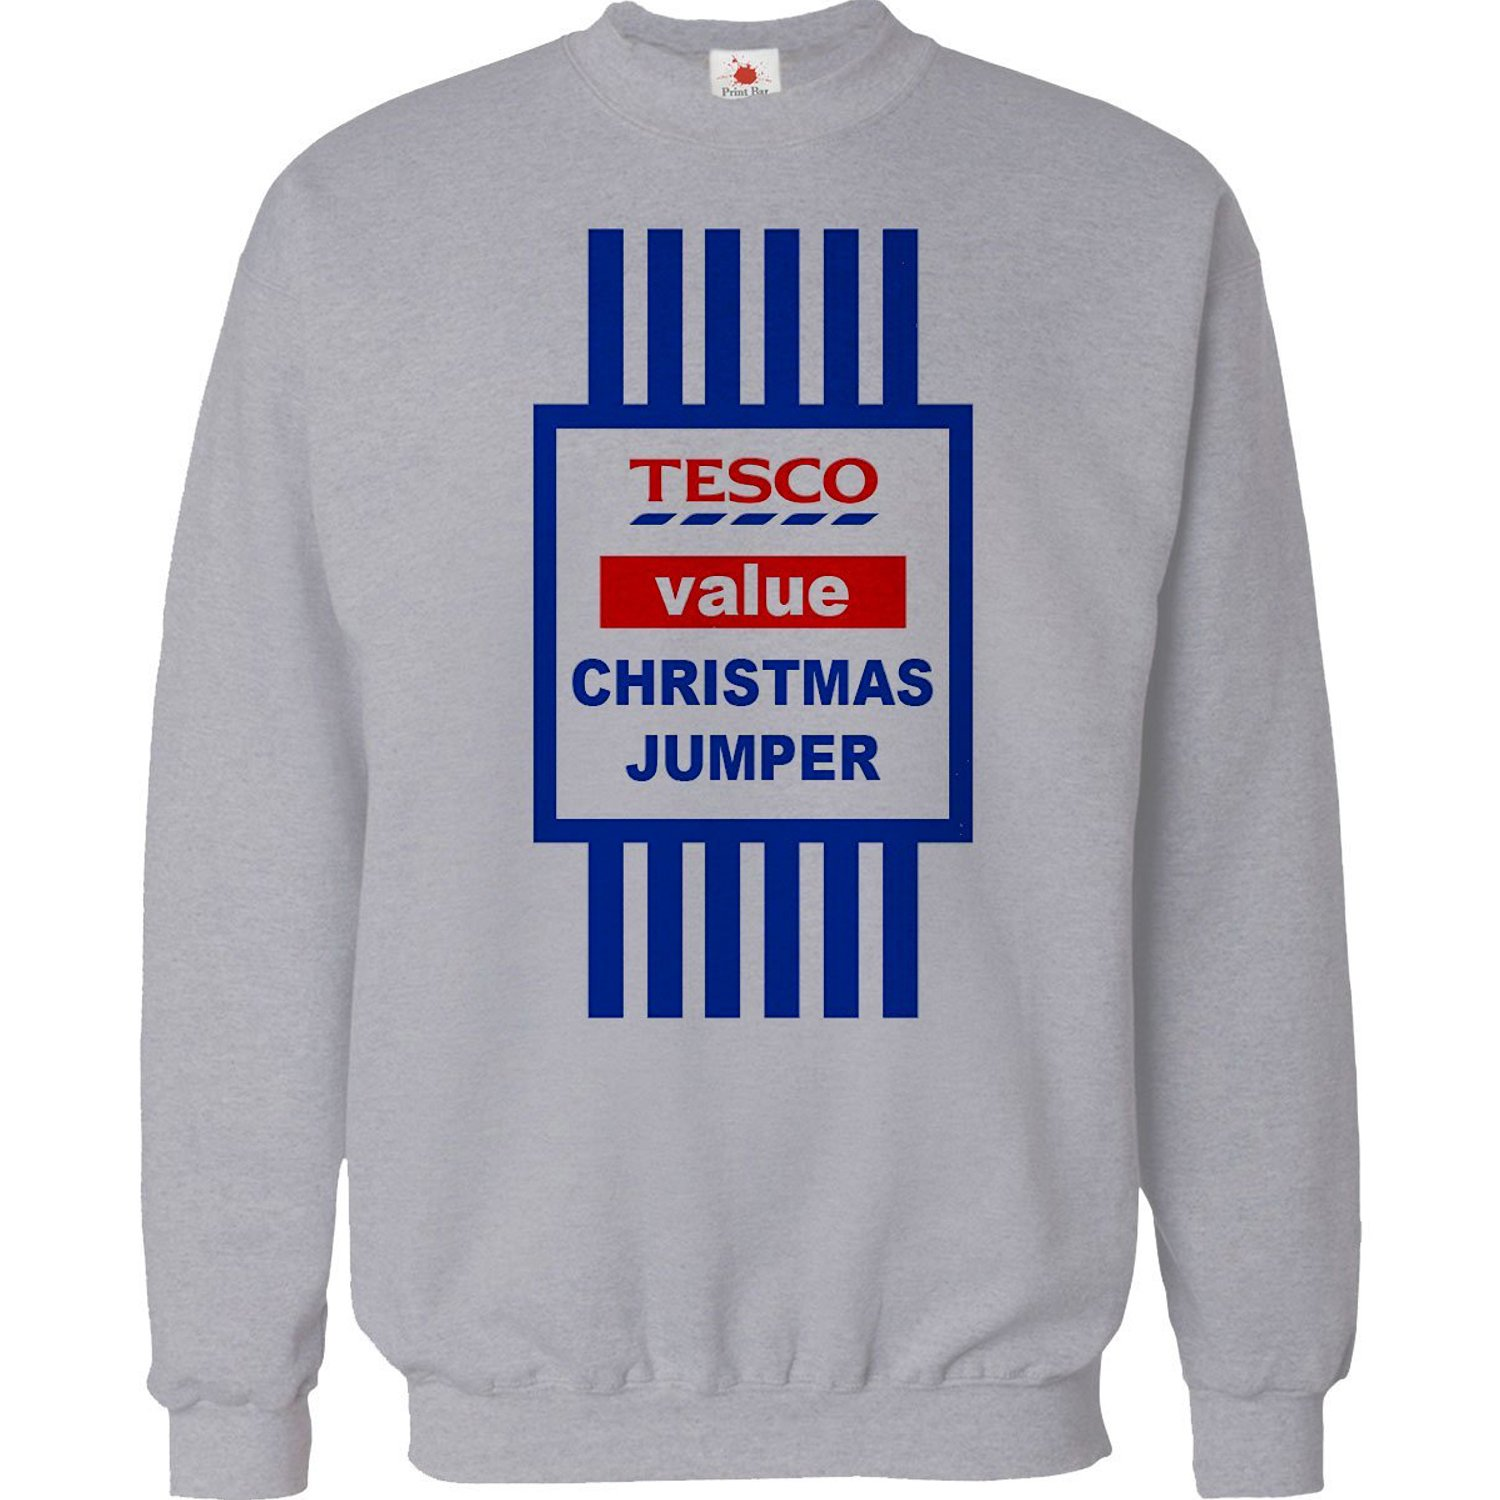 CHRISTMAS JUMPER SWEATER MENS FUNNY TOPS TESCO VALUE SWEAT SHIRT ...